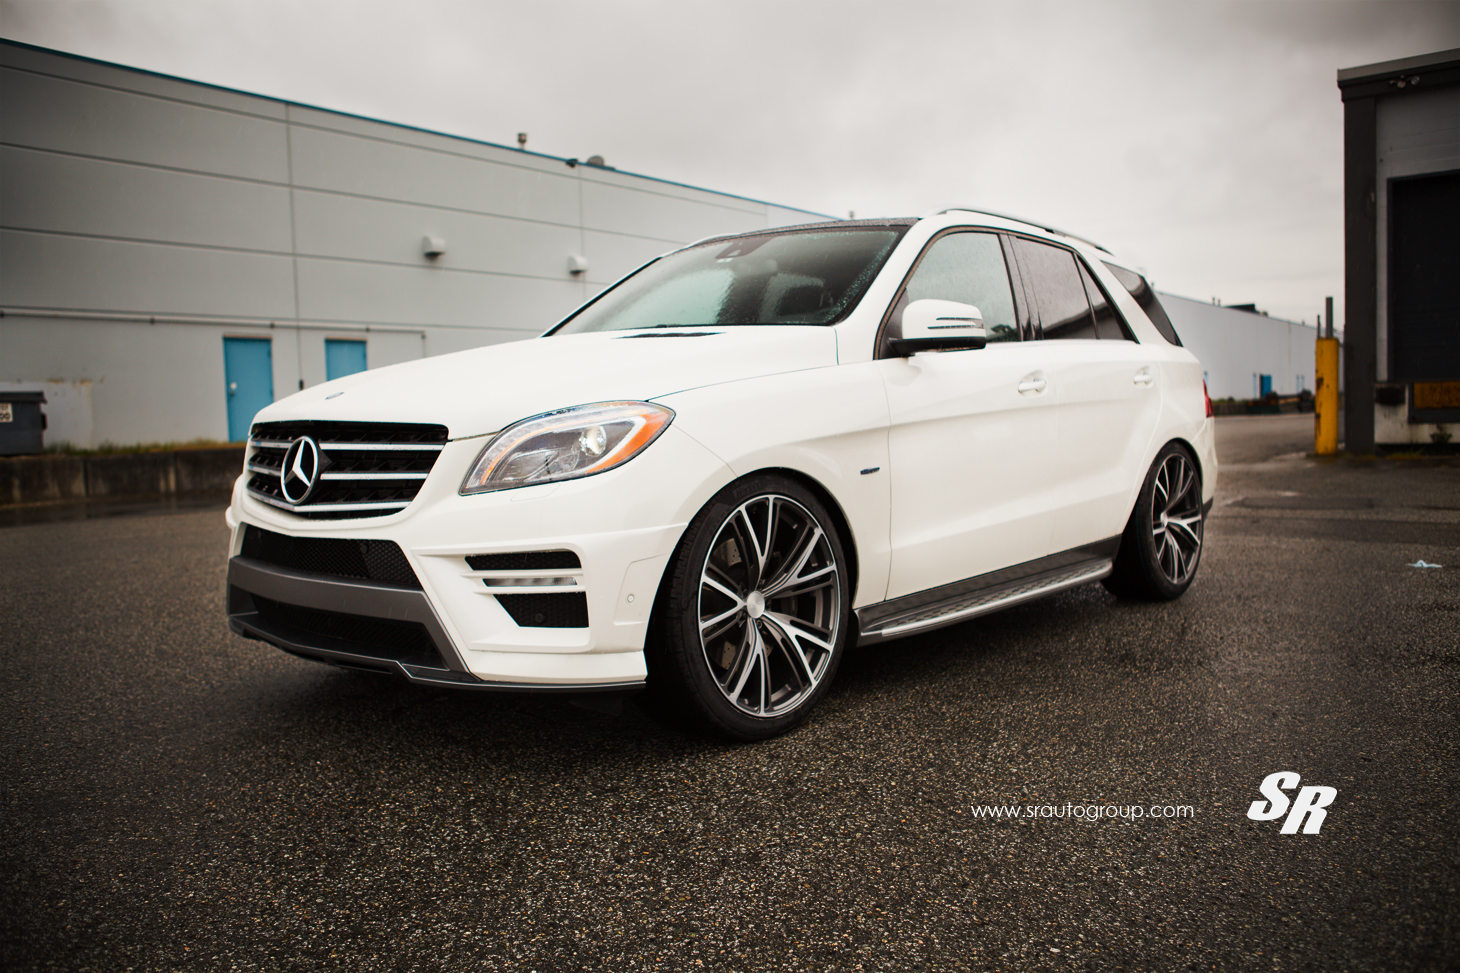 136 SR Auto Group Gives A Mercedes Benz ML 550 The Royal Treatment